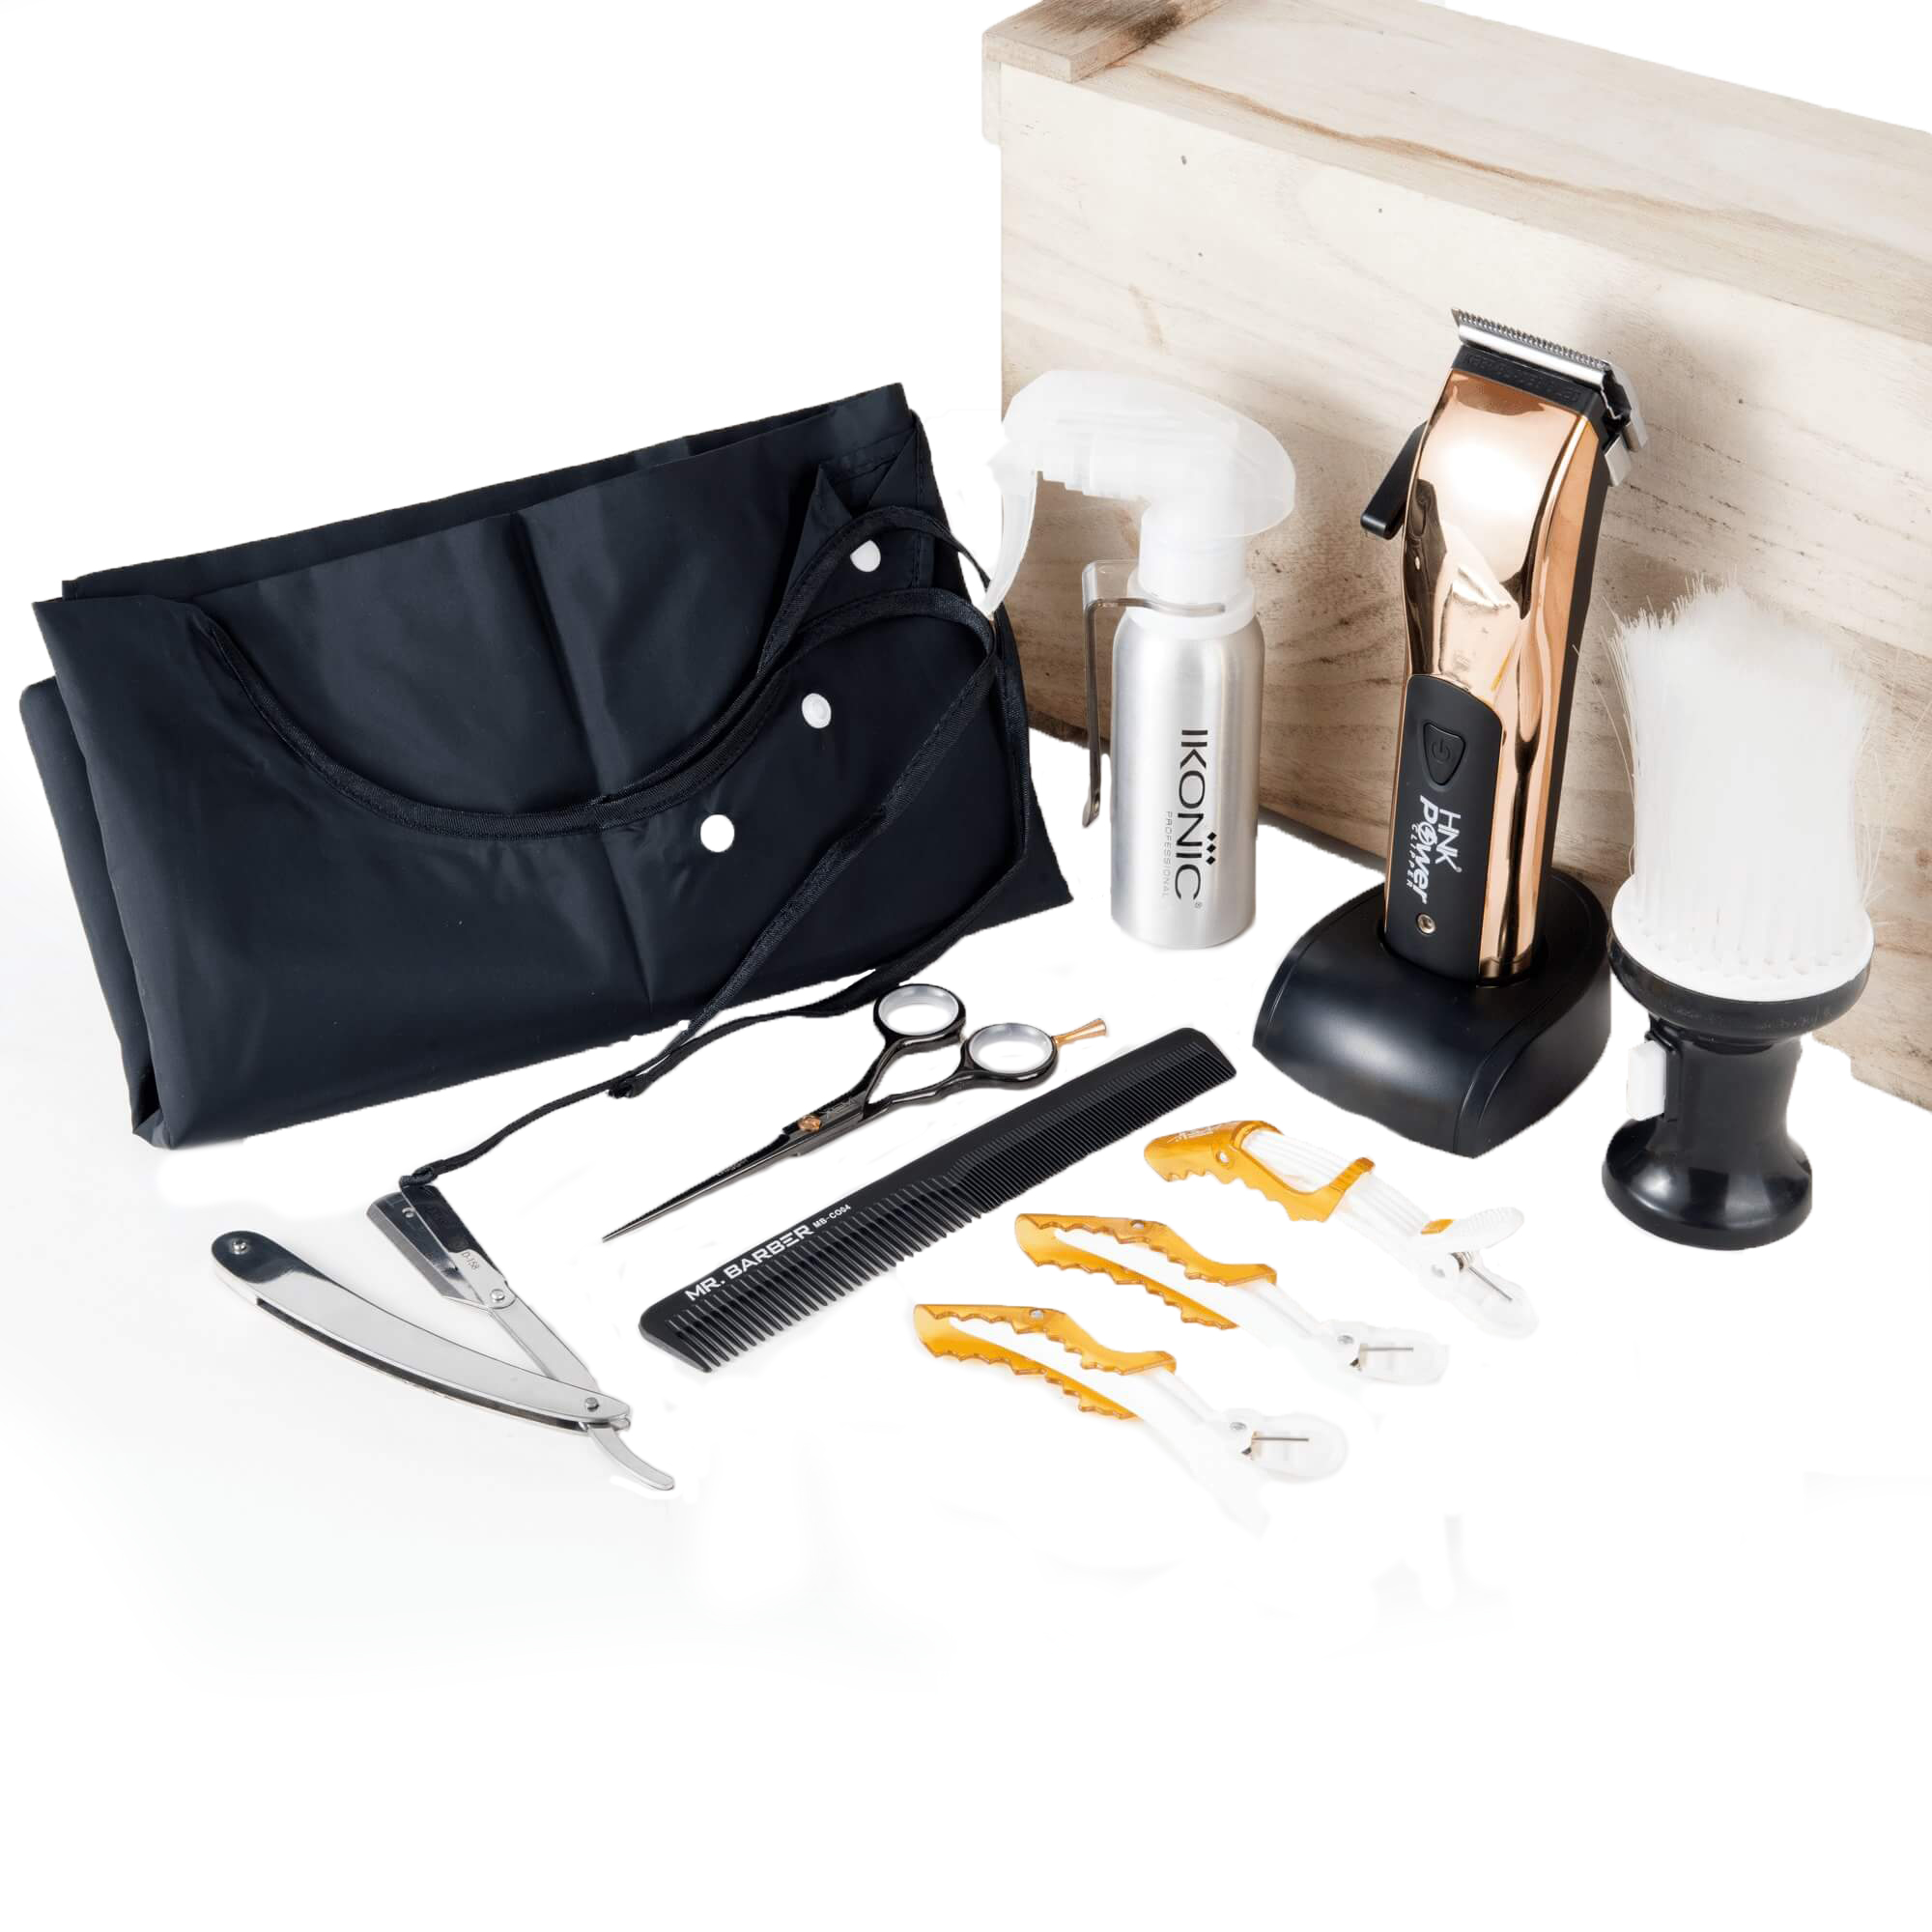 Self Barbering Kit